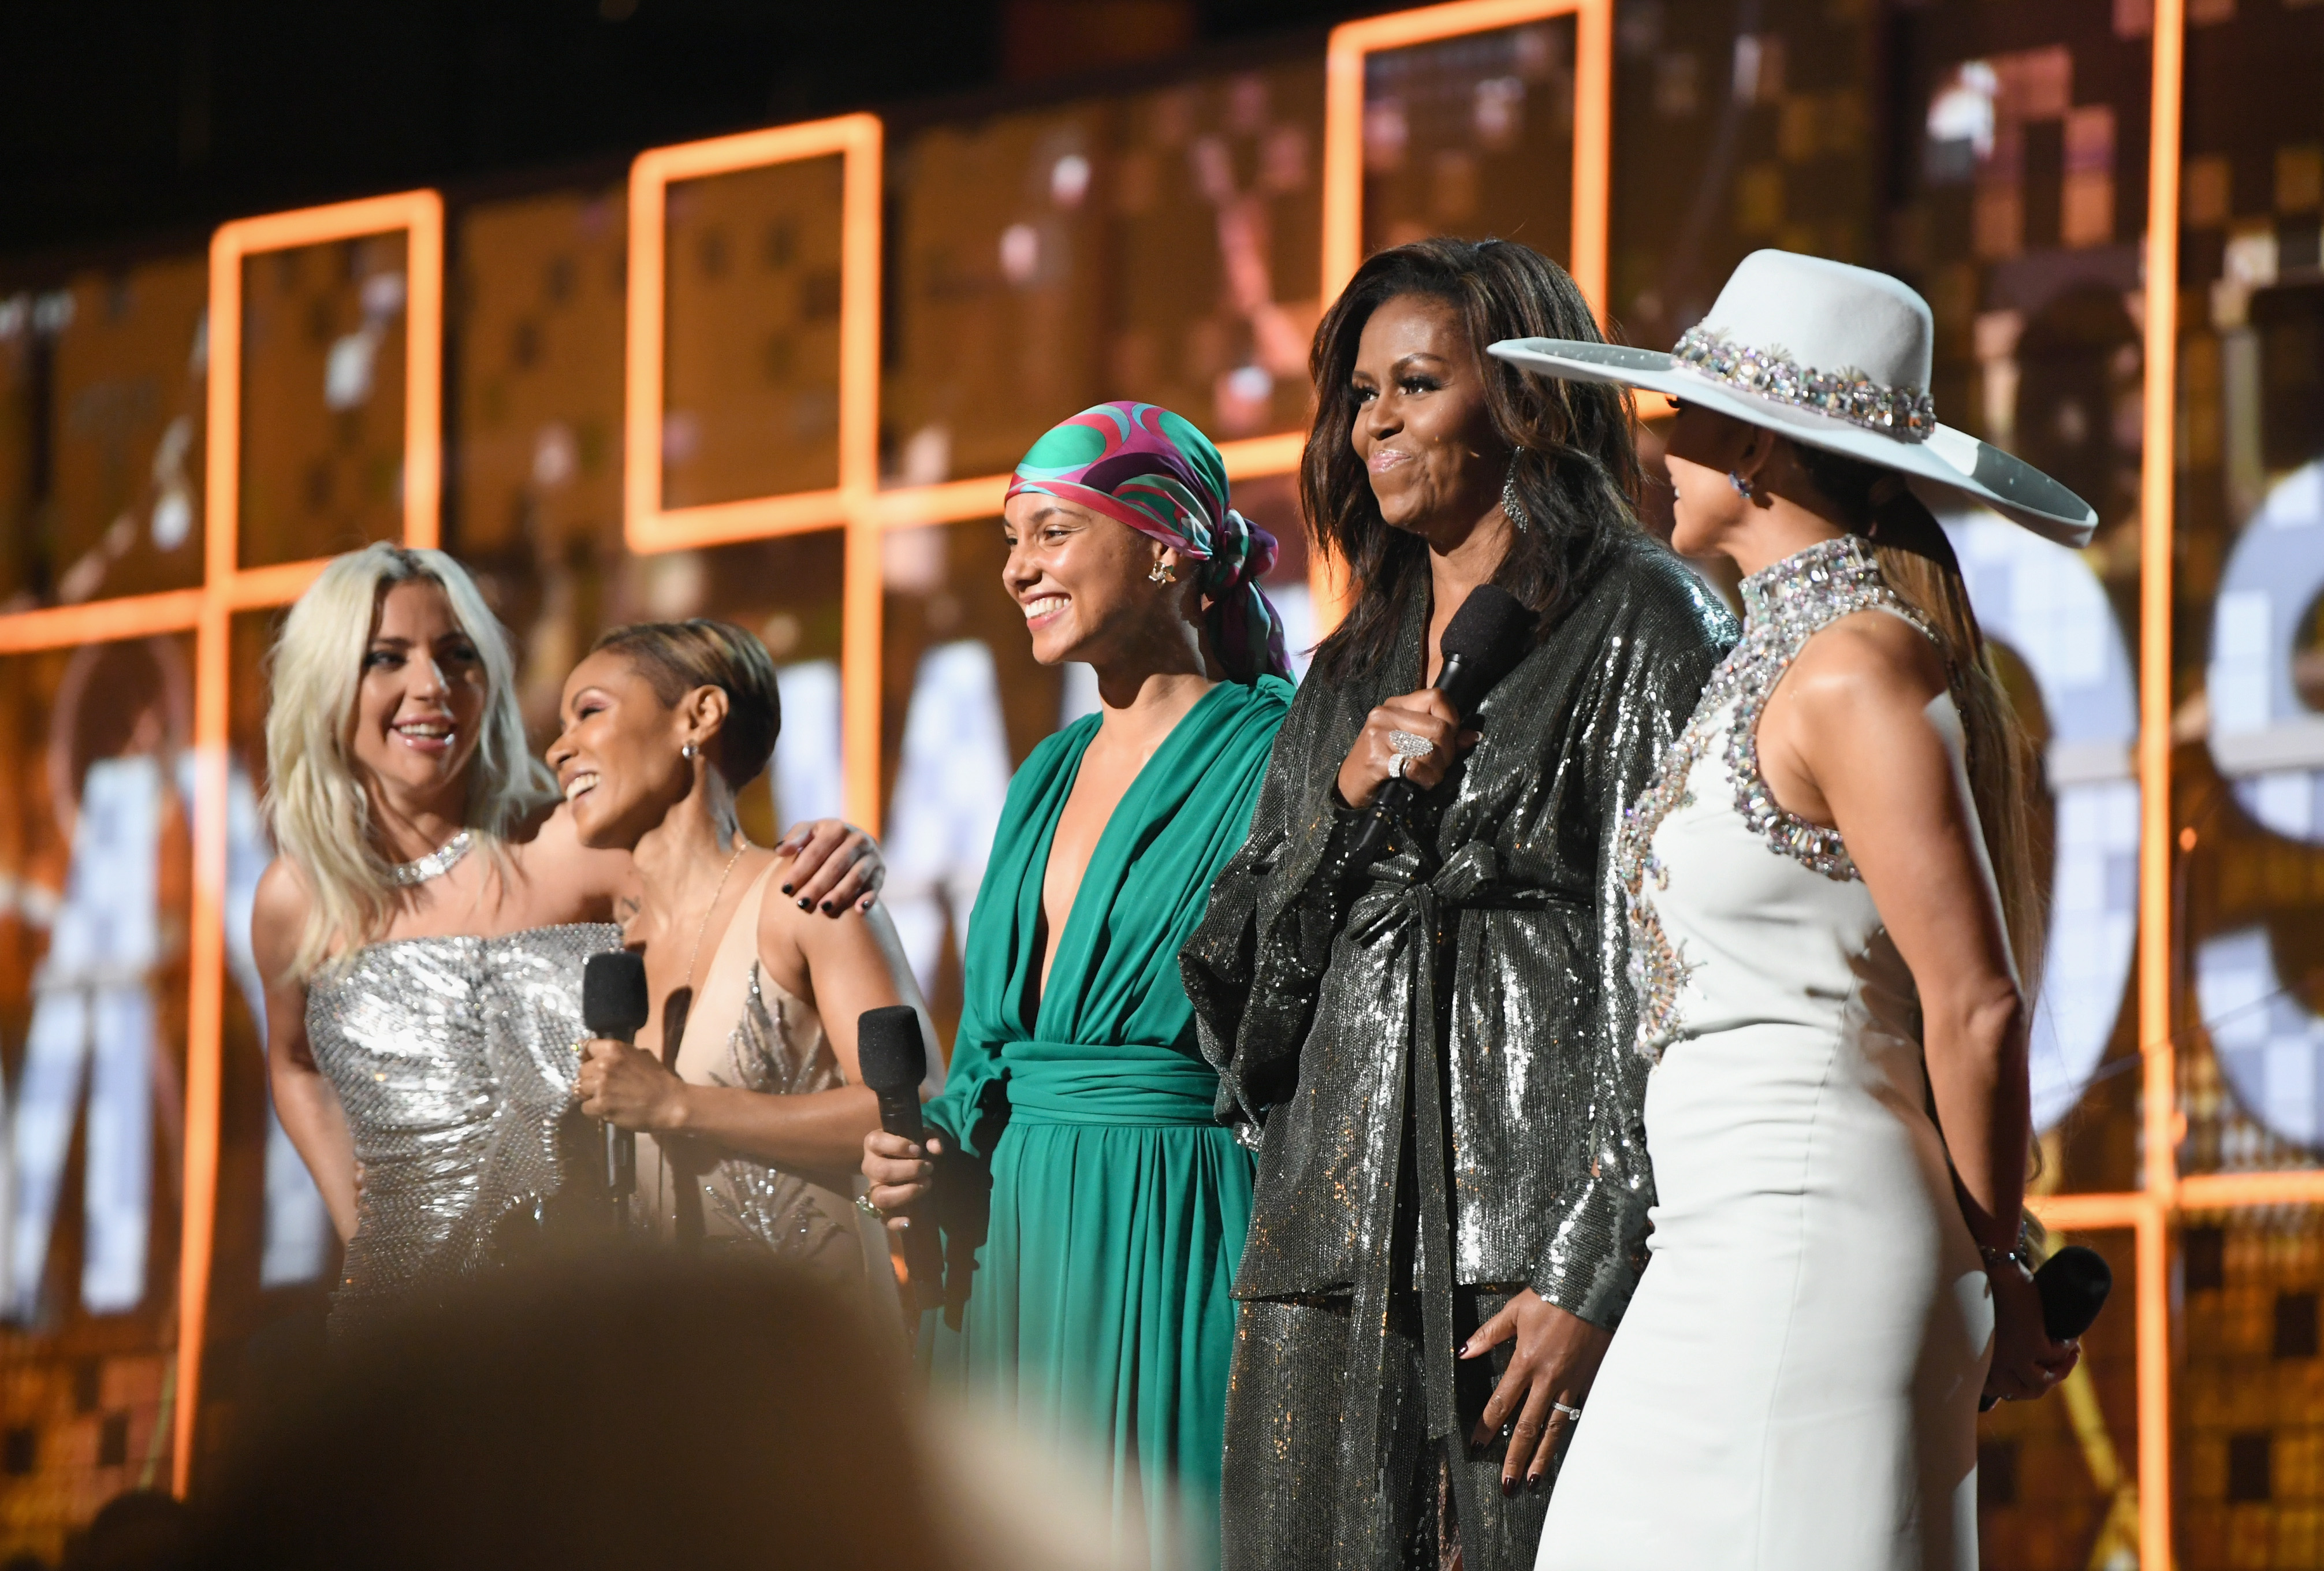 Lady Gaga, Jada Pinkett Smith, Alicia Keys, Michelle Obama and Jennifer Lopez speak onstage at the Grammys. (Emma McIntyre/Getty Images for The Recording Academy)